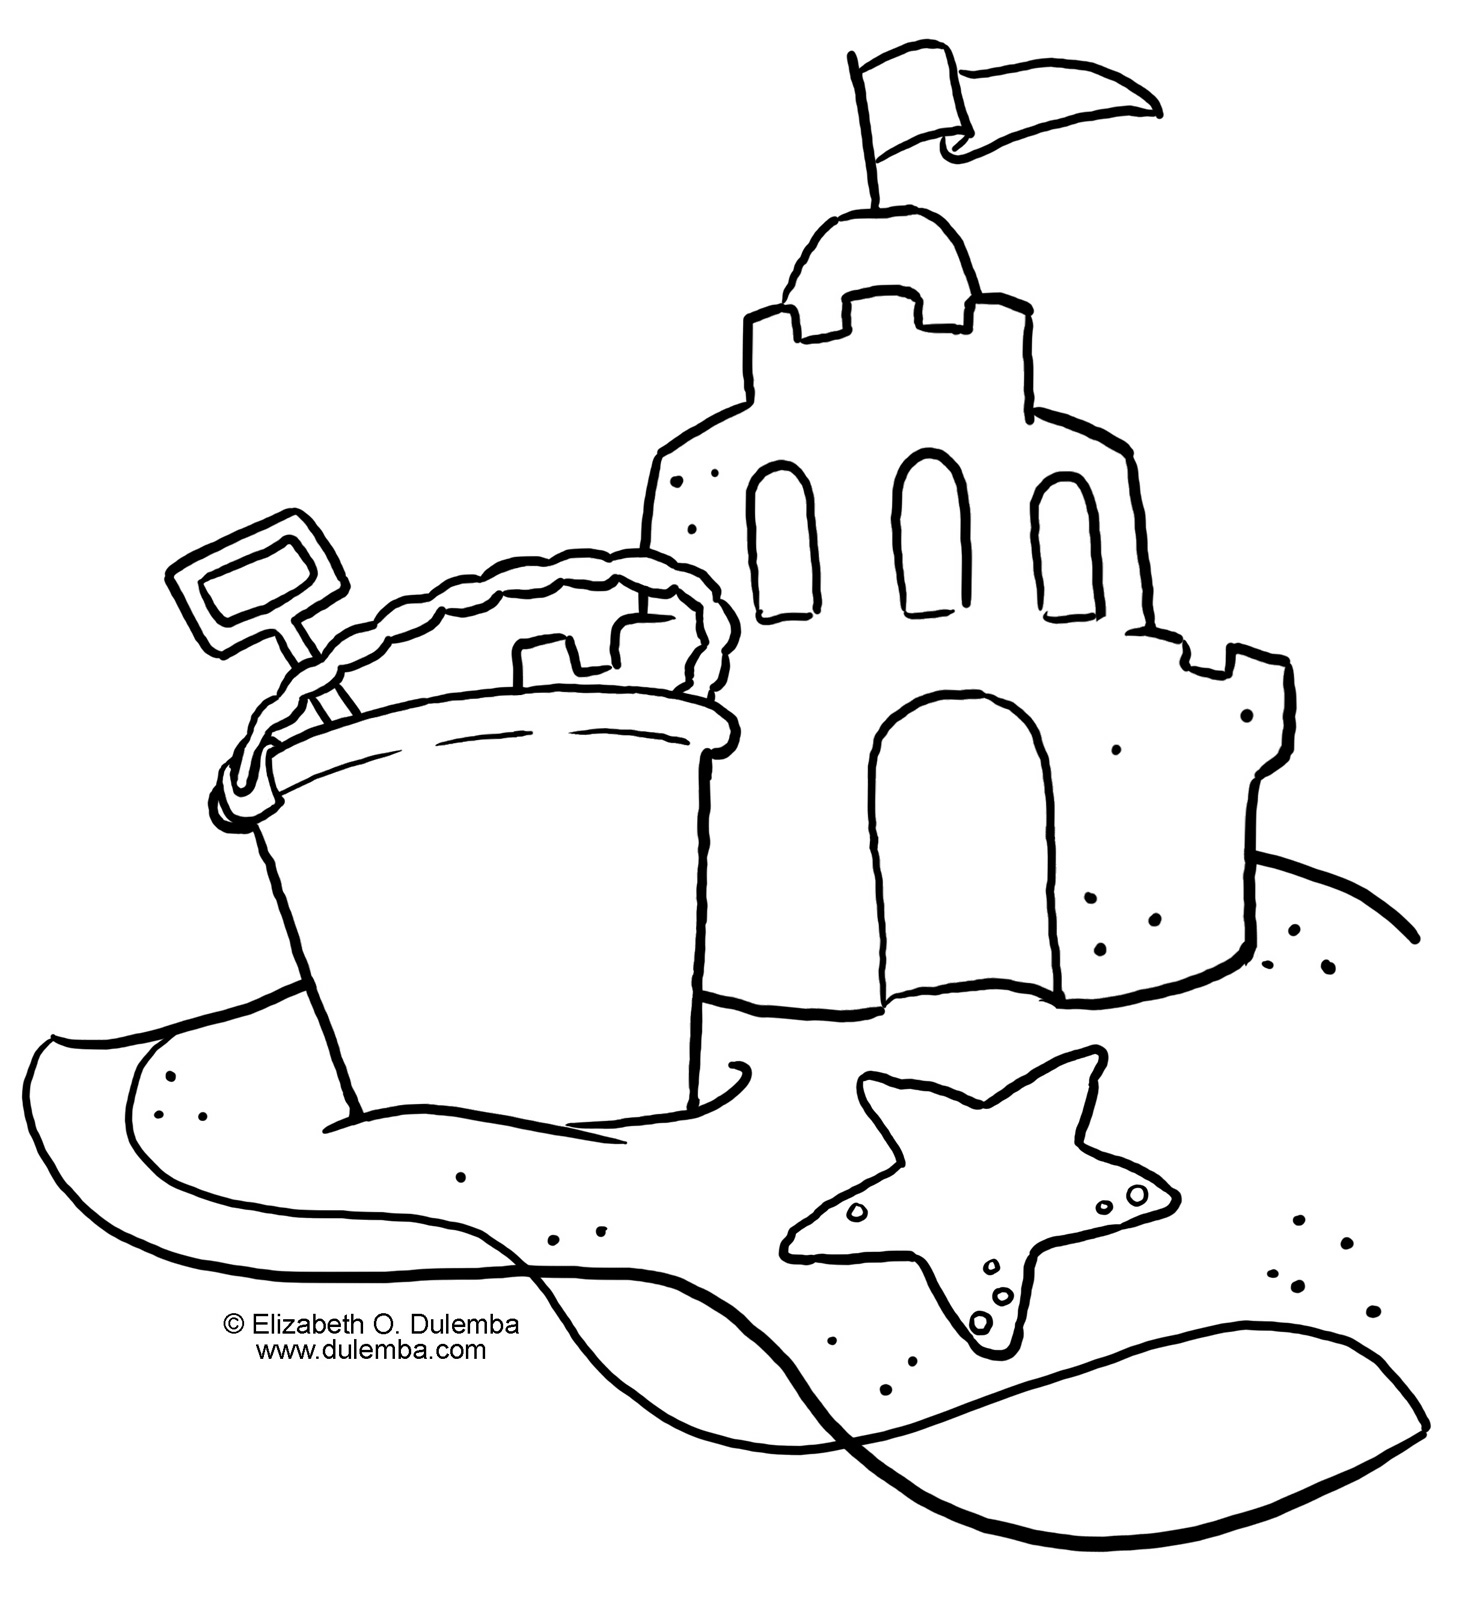 Free Sandcastle Coloring Page, Download Free Clip Art, Free Clip ... | 1600x1468